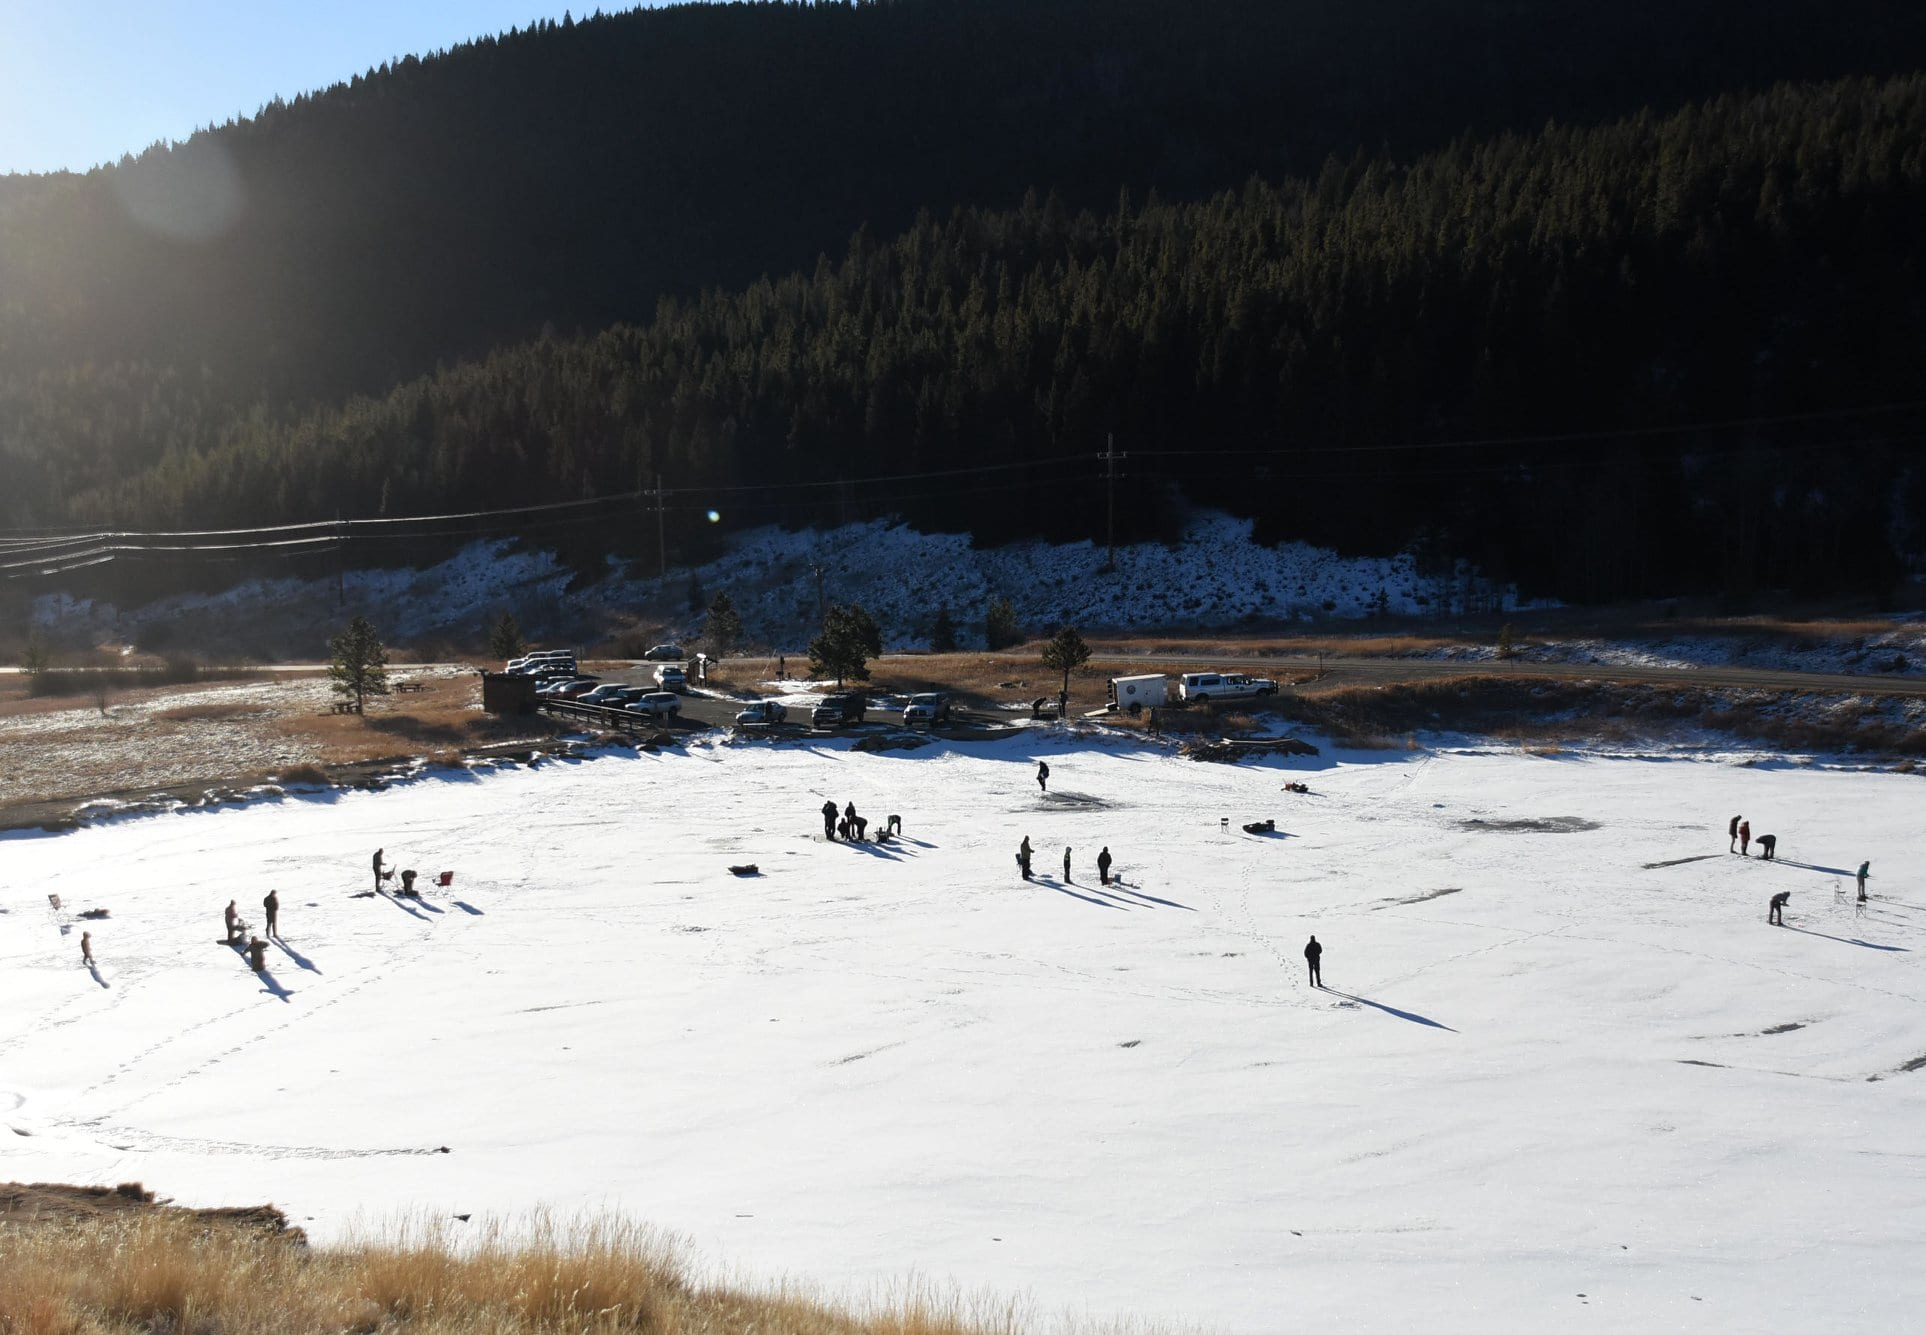 image of ice fishing in golden gate canyon state park